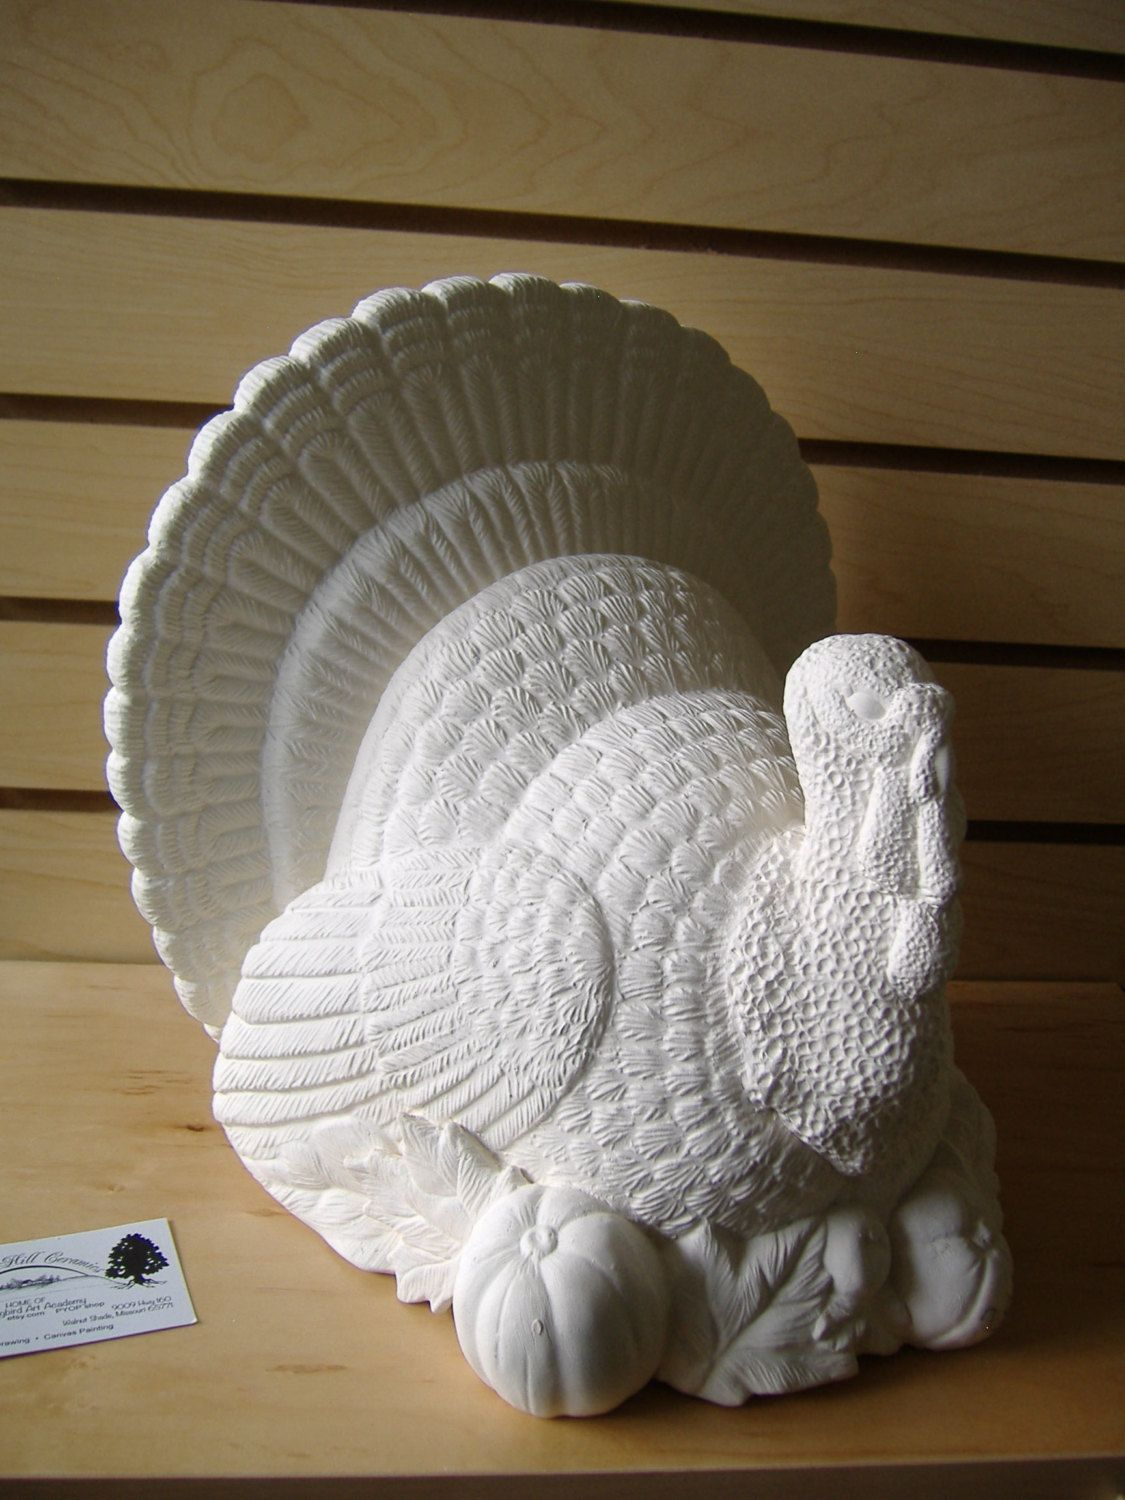 e6637d5dfe6fc Turkey Center Piece BIG Table Top Thanksgiving Turkey UNPAINTED ...